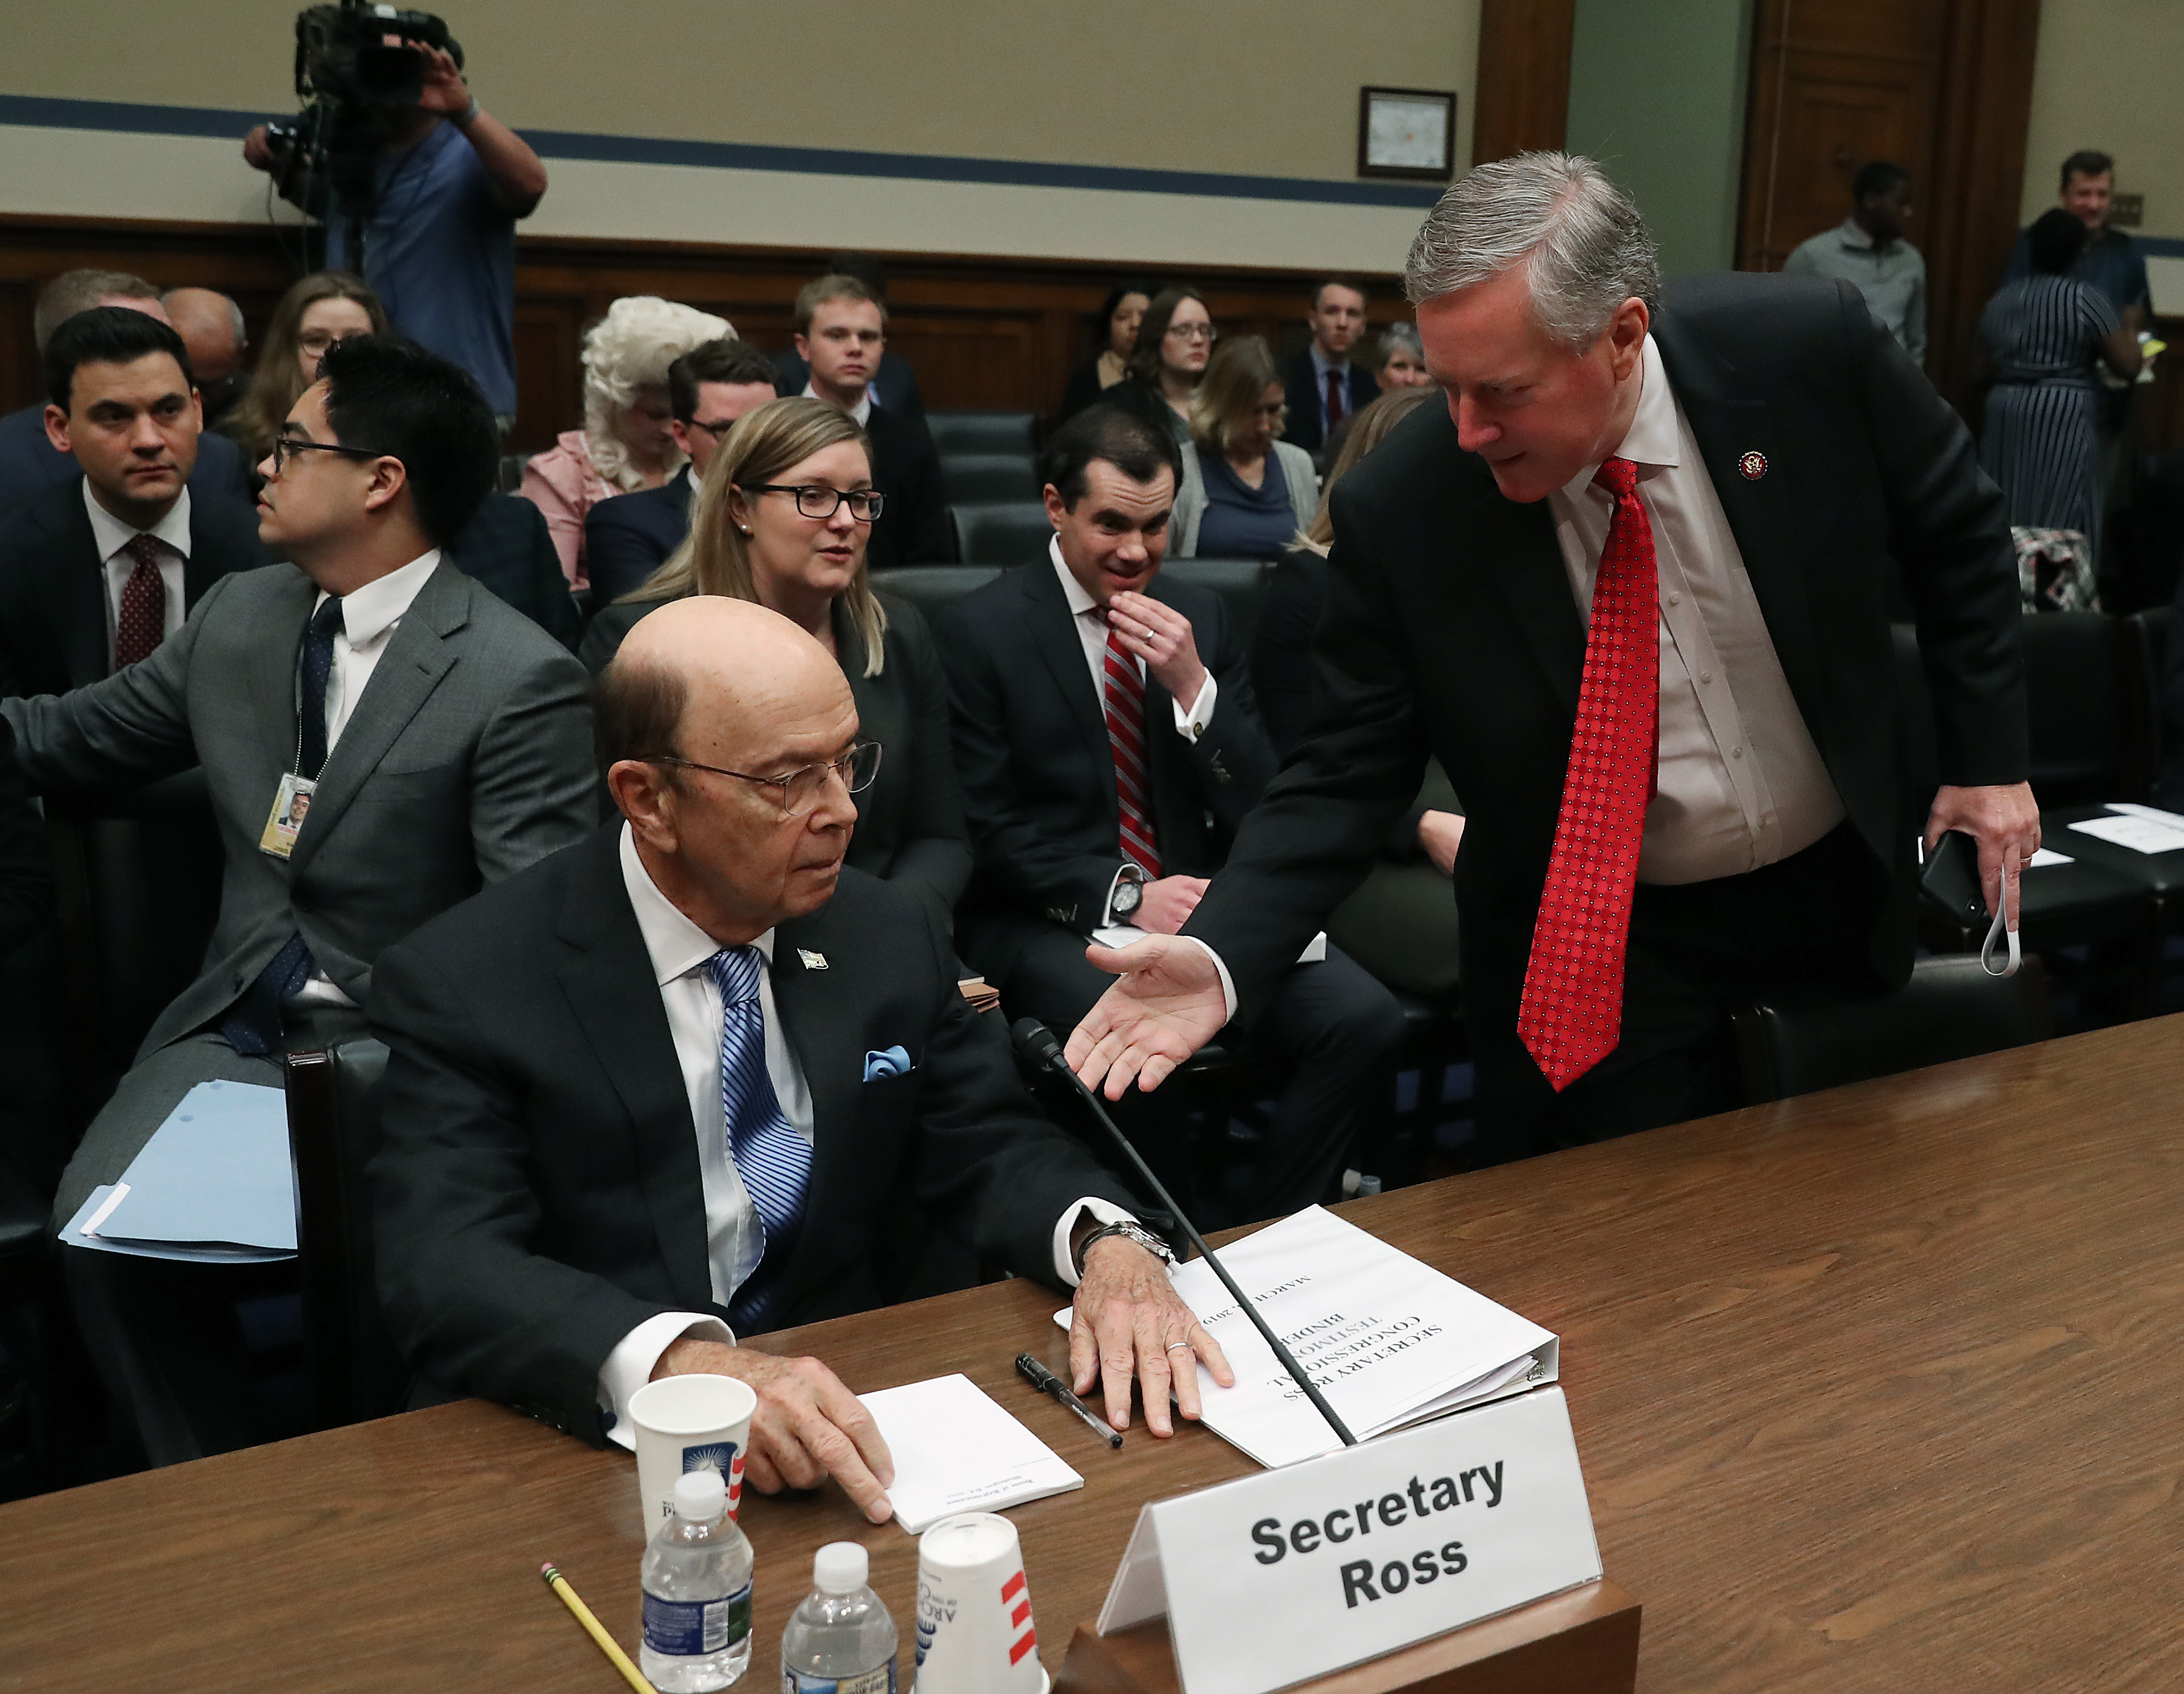 U.S. Rep. Mark Meadows (R) greets Commerce Secretary Wilbur Ross during a House Oversight and Reform Committee hearing, on March 14, 2019 in Washington, DC. (Photo by Mark Wilson/Getty Images)